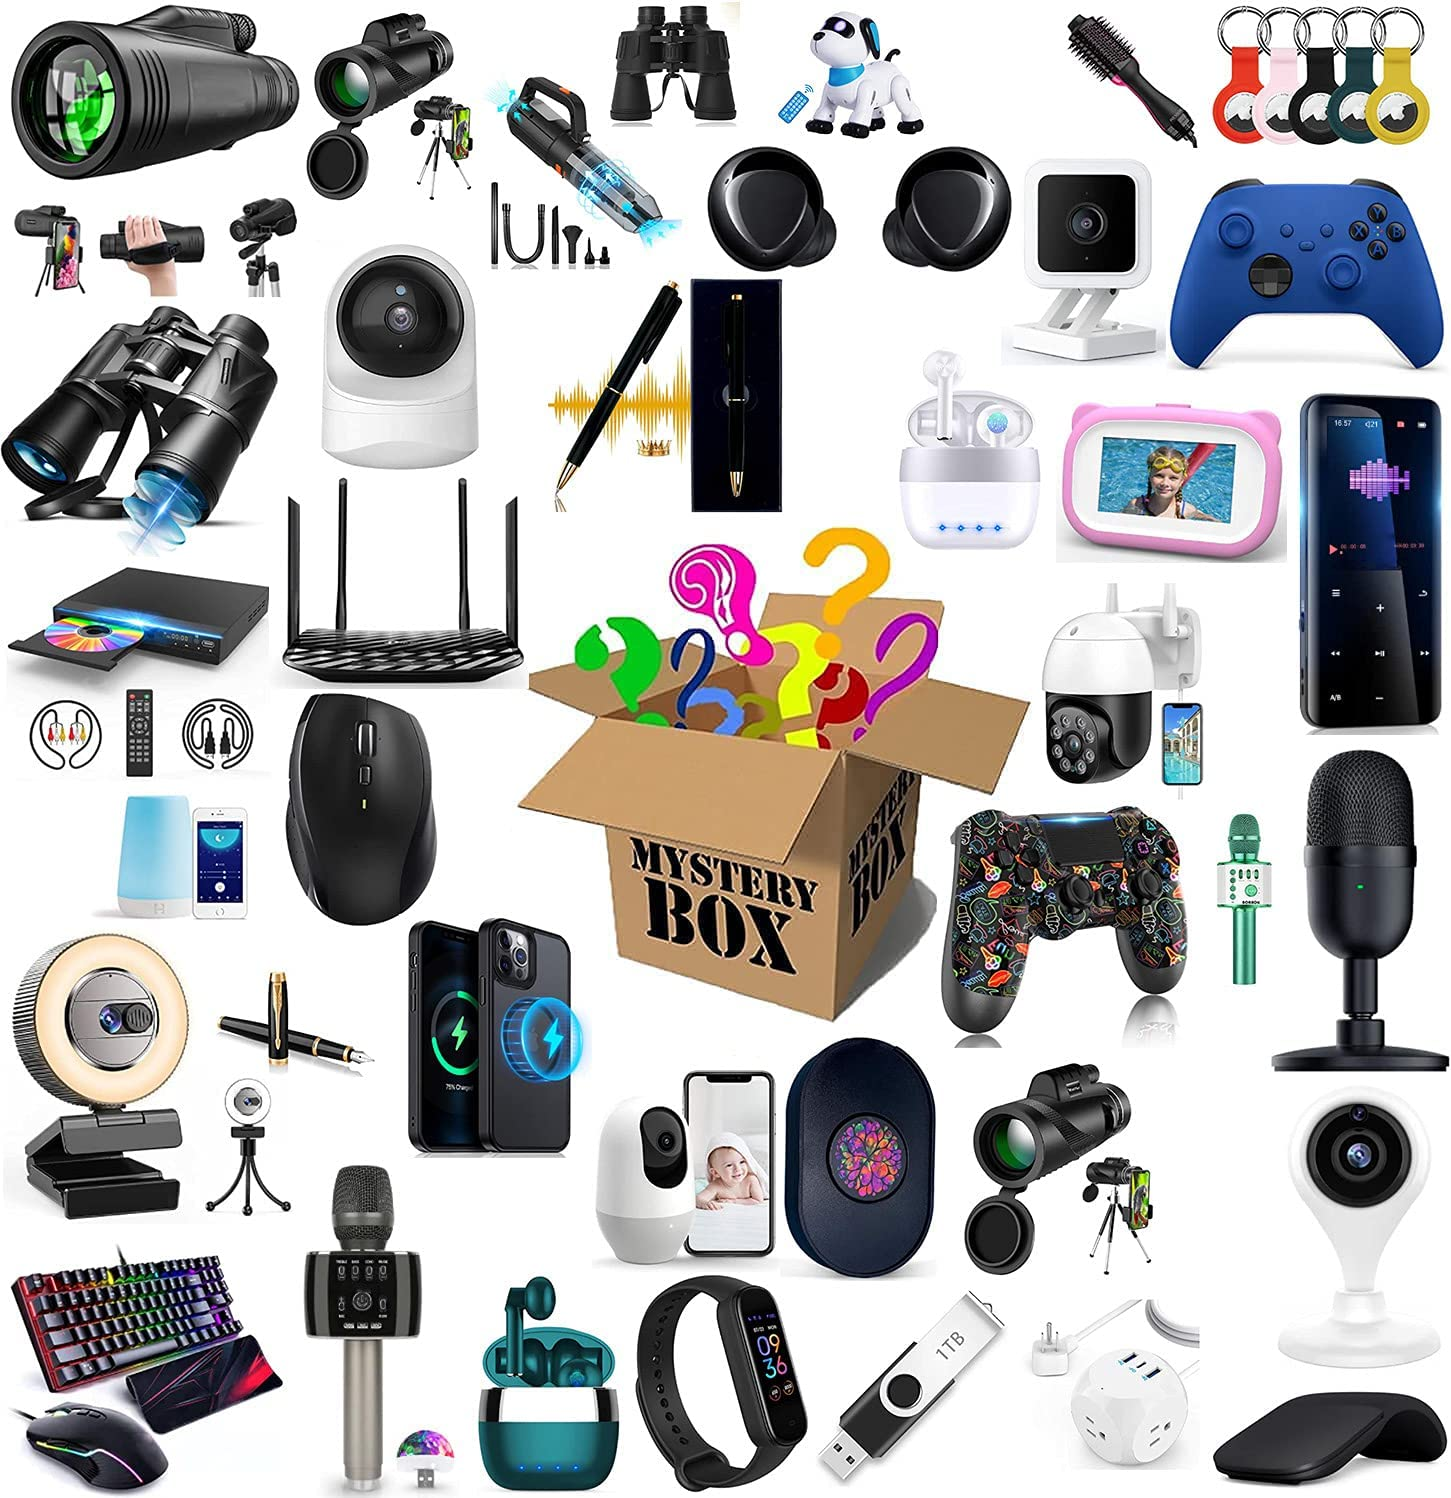 Mystery Box Electronic Manufacturer regenerated product Lucky Costeffect Boxes Blind Reservation